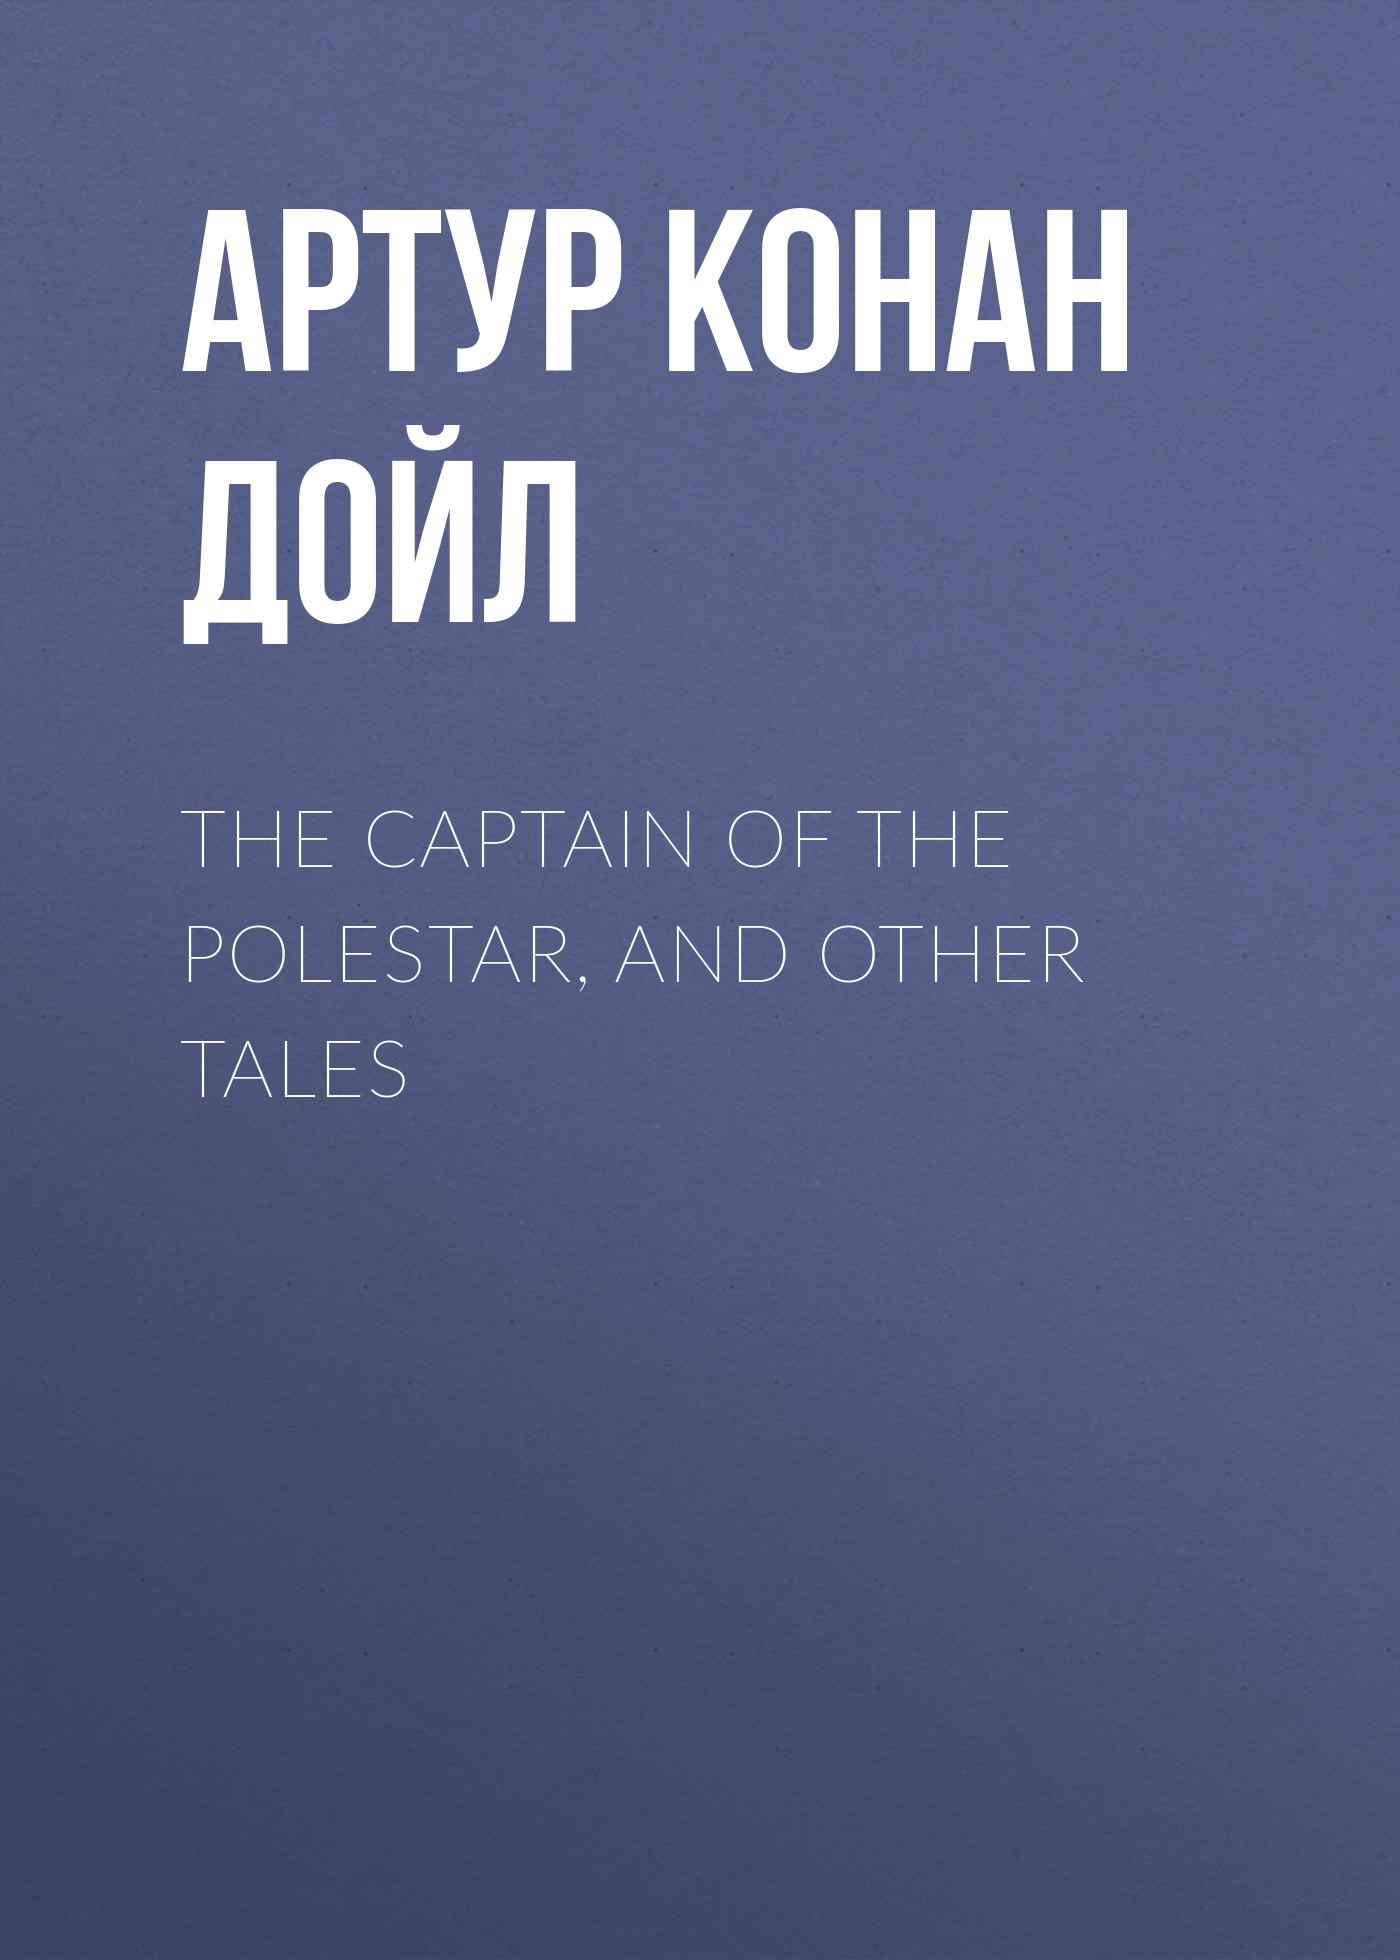 Артур Конан Дойл The Captain of the Polestar, and Other Tales артур конан дойл the stark munro letters